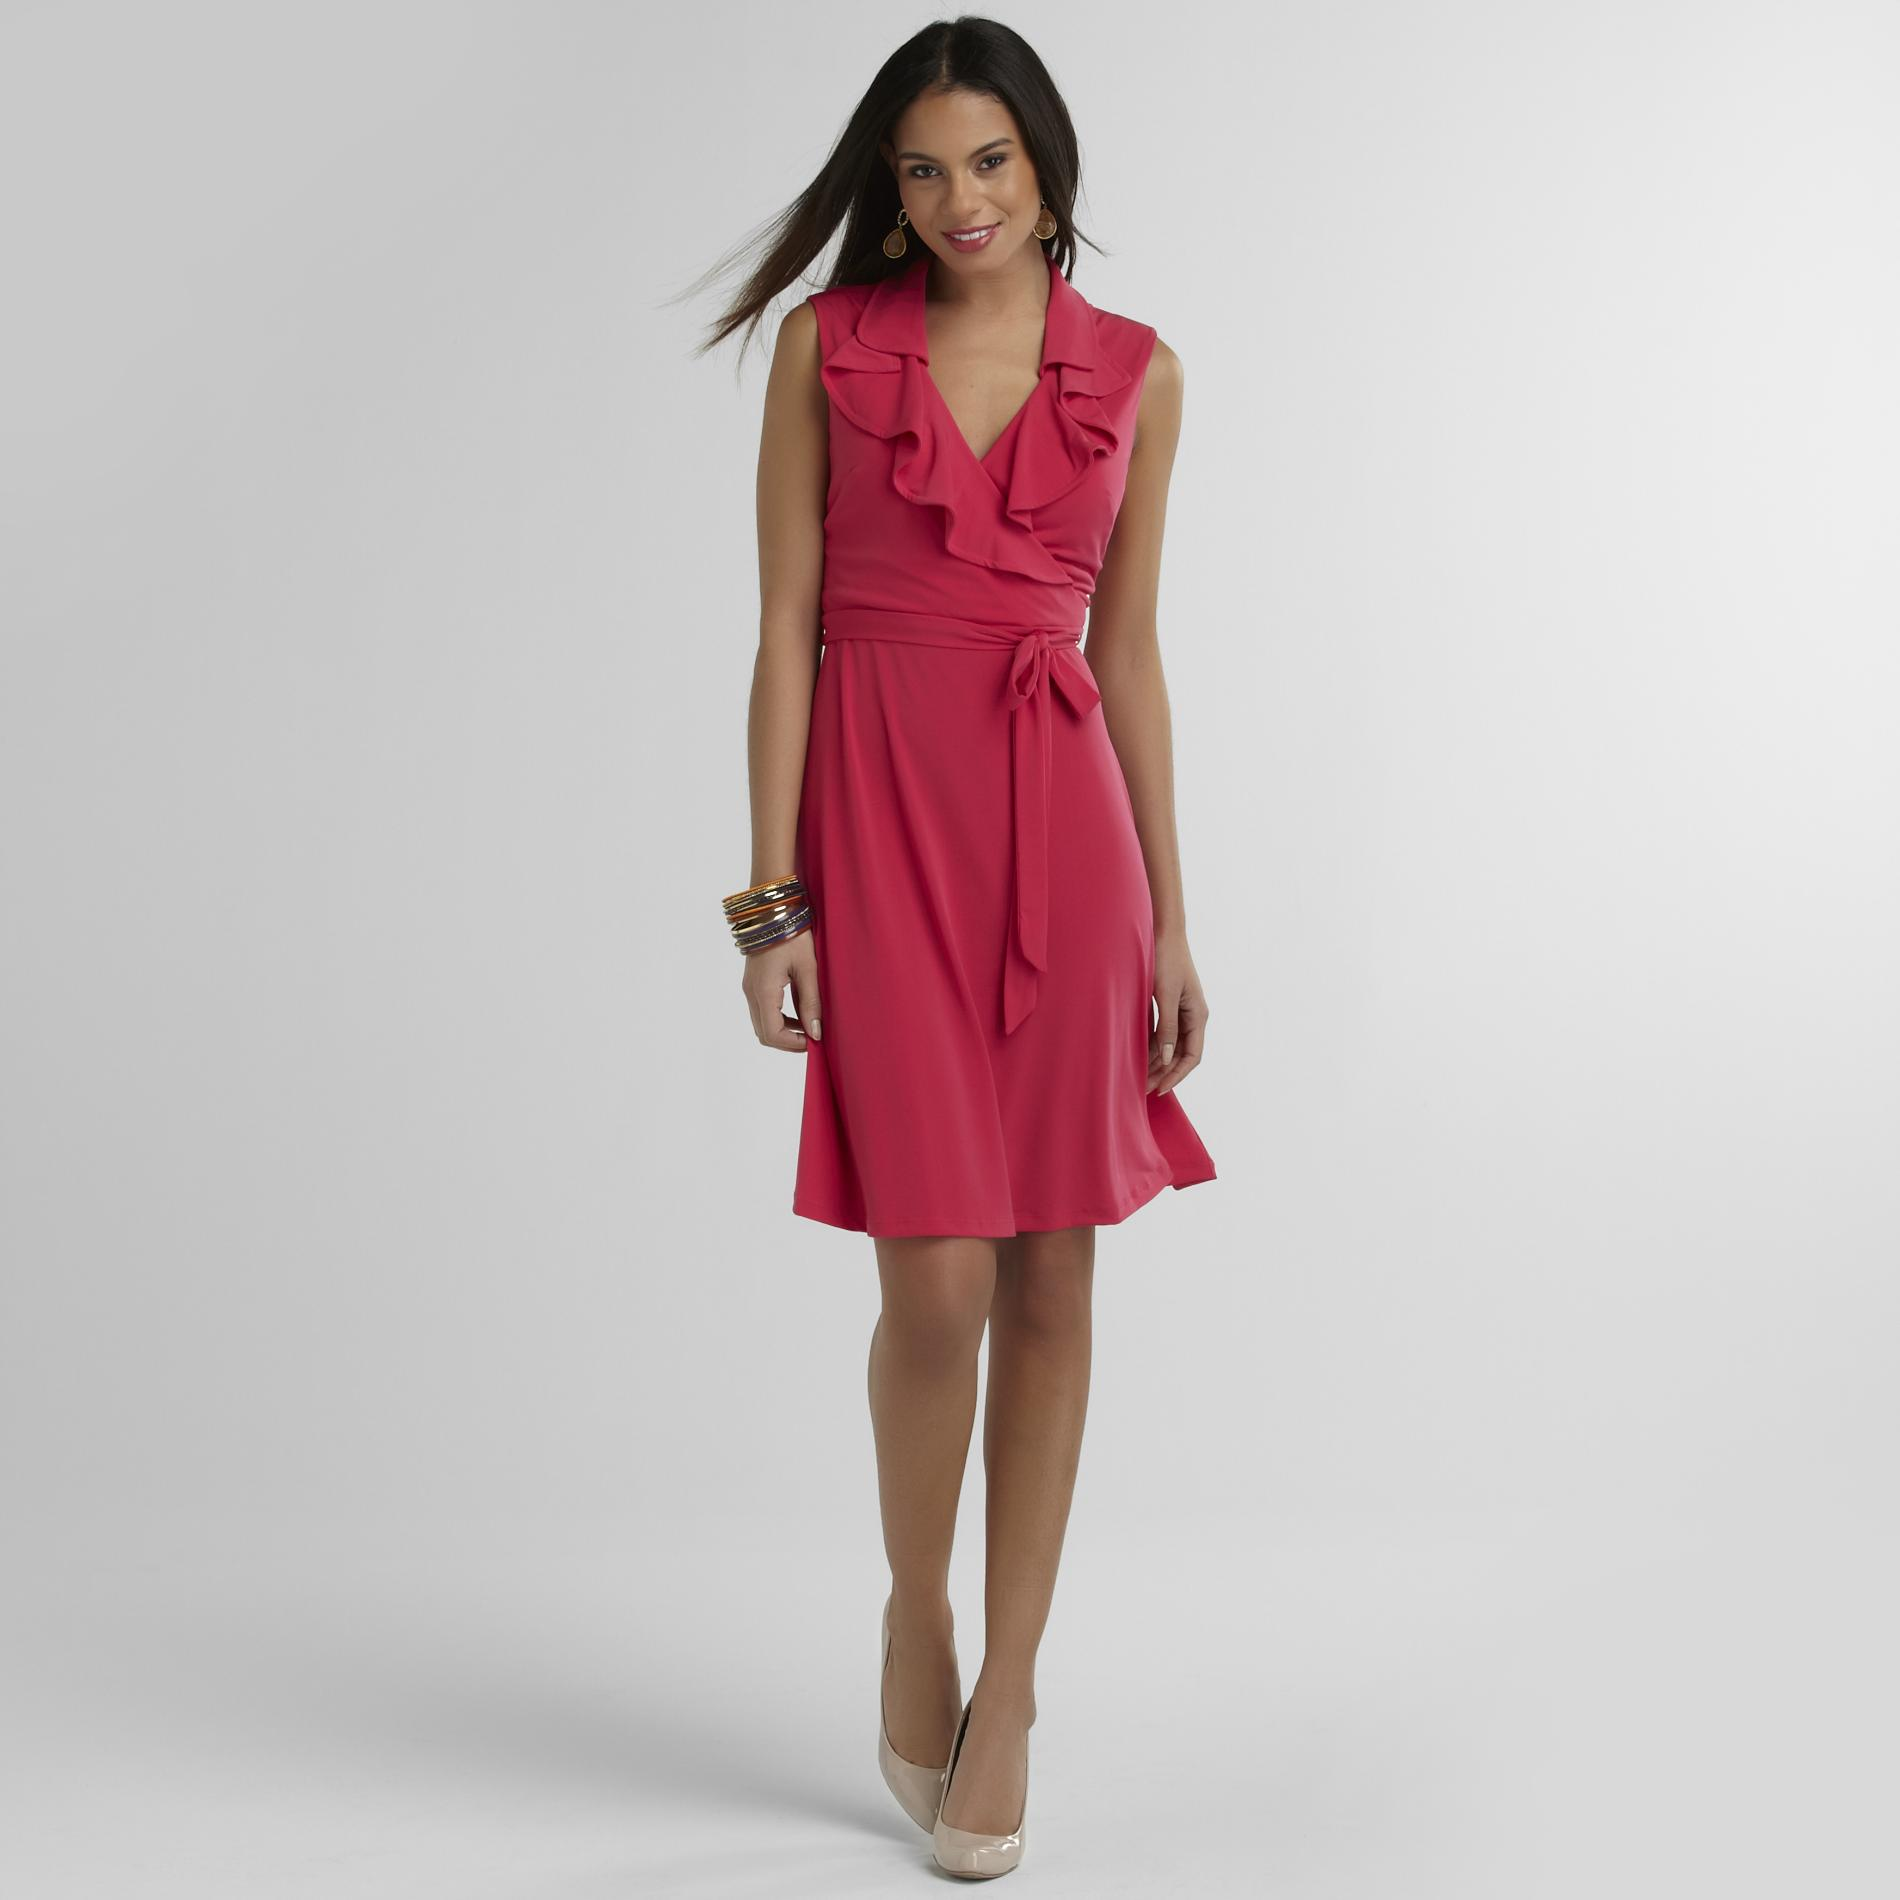 Studio 1 Women's Faux Wrap Dress at Sears.com